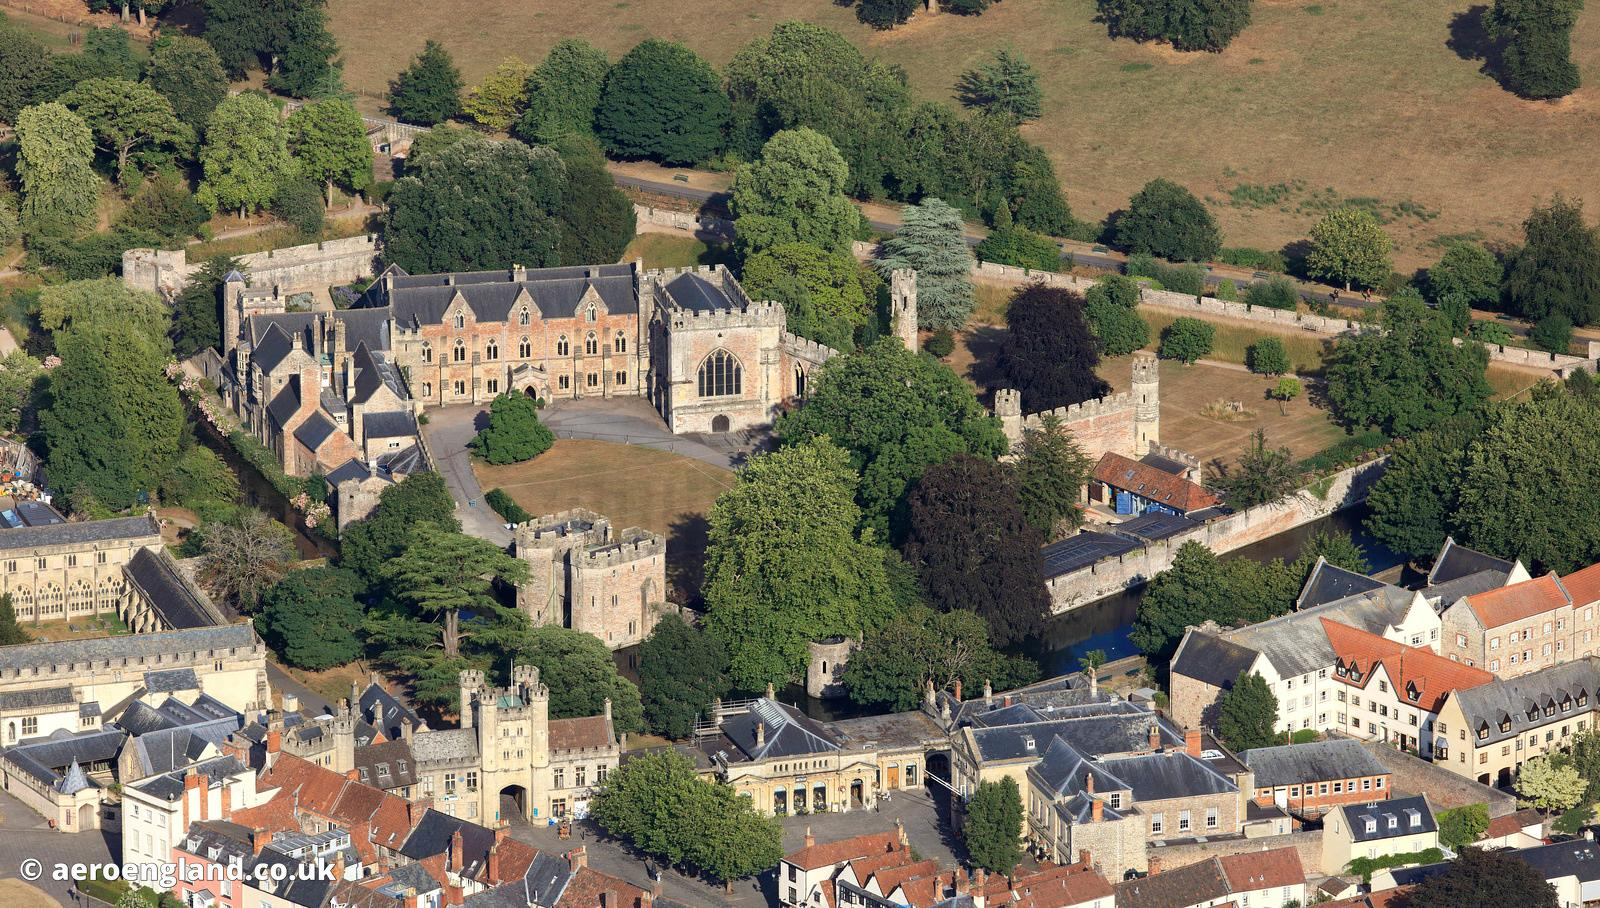 Bishops' Palace  Wellsaerial photograph